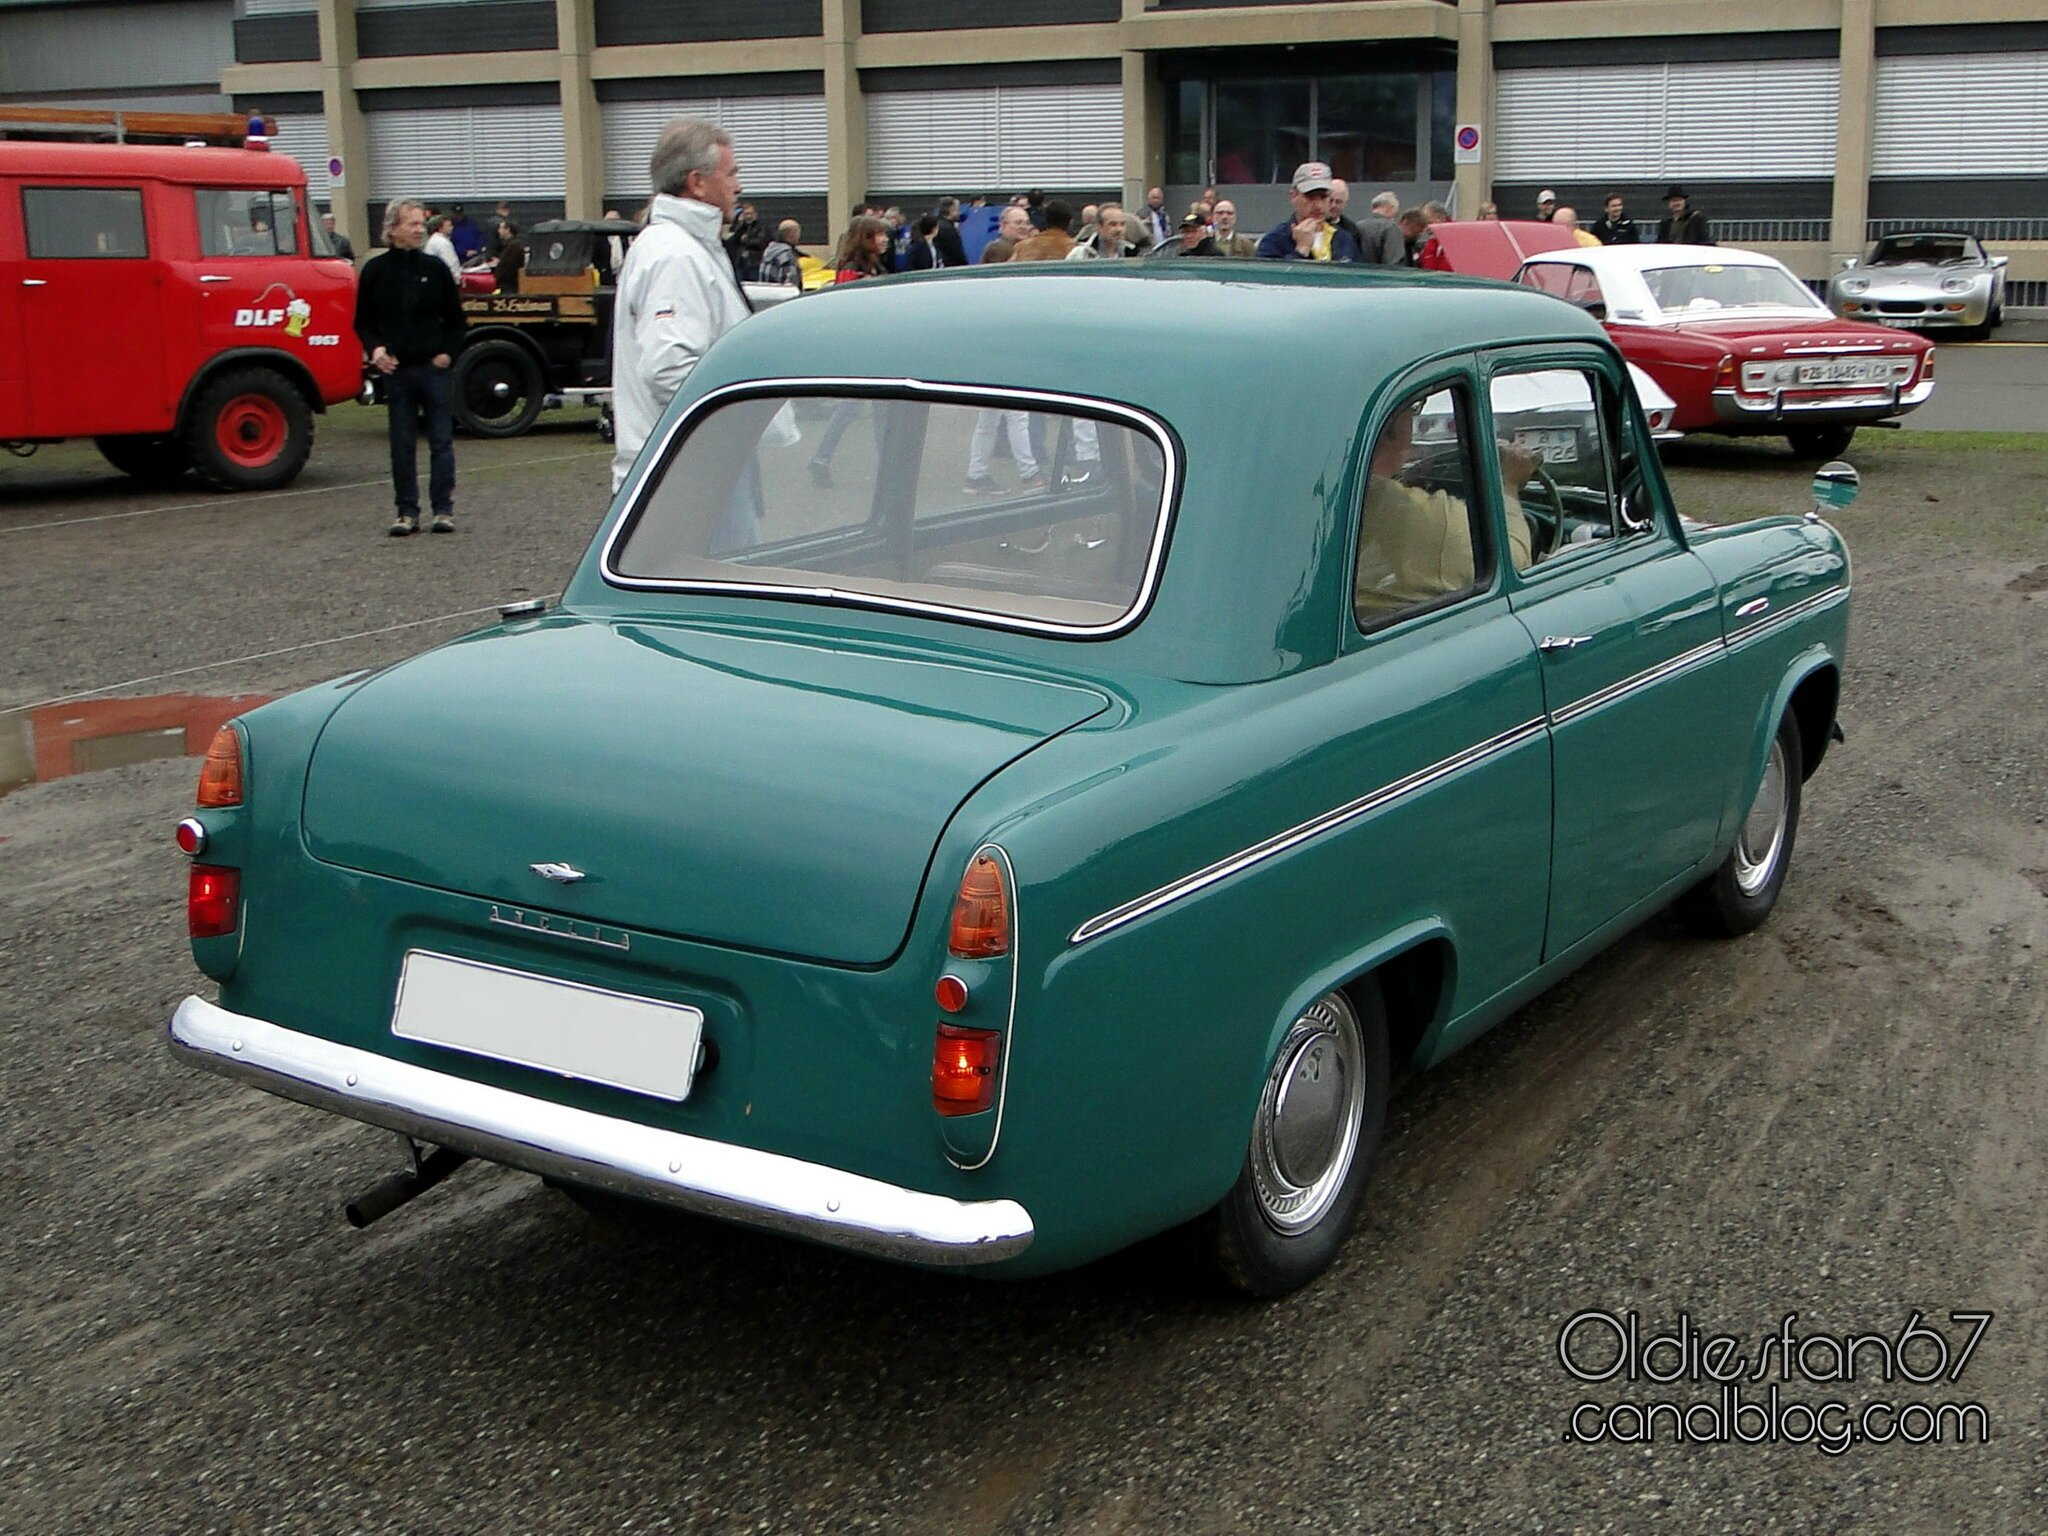 ford anglia 100e 1953 1959 oldiesfan67 mon blog auto. Black Bedroom Furniture Sets. Home Design Ideas